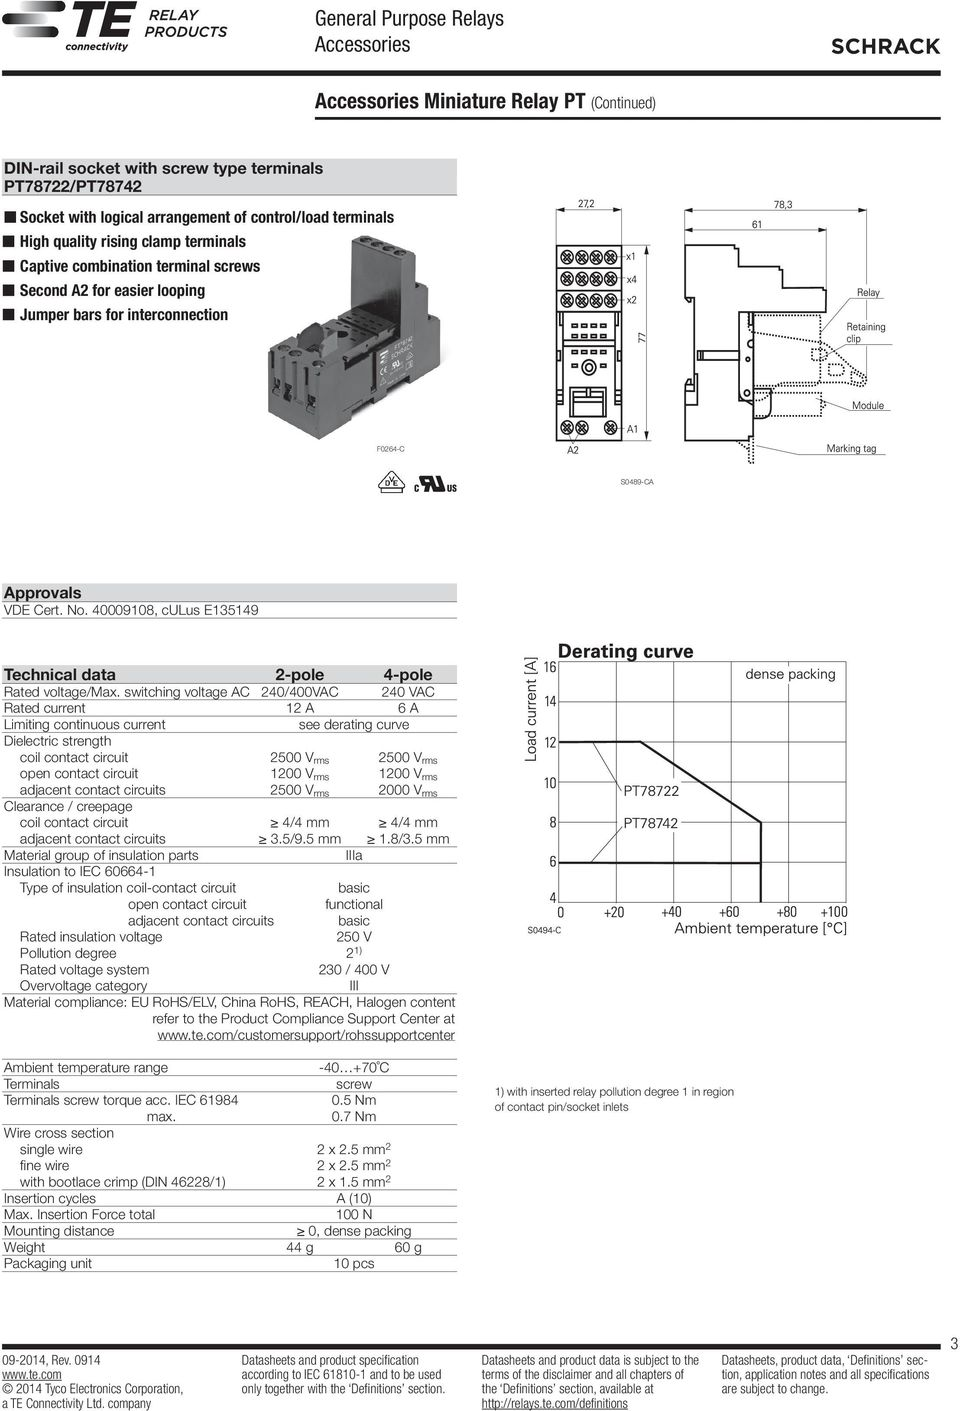 40009108, culus E135149 Technical data 2-pole 4-pole Rated voltage/max.